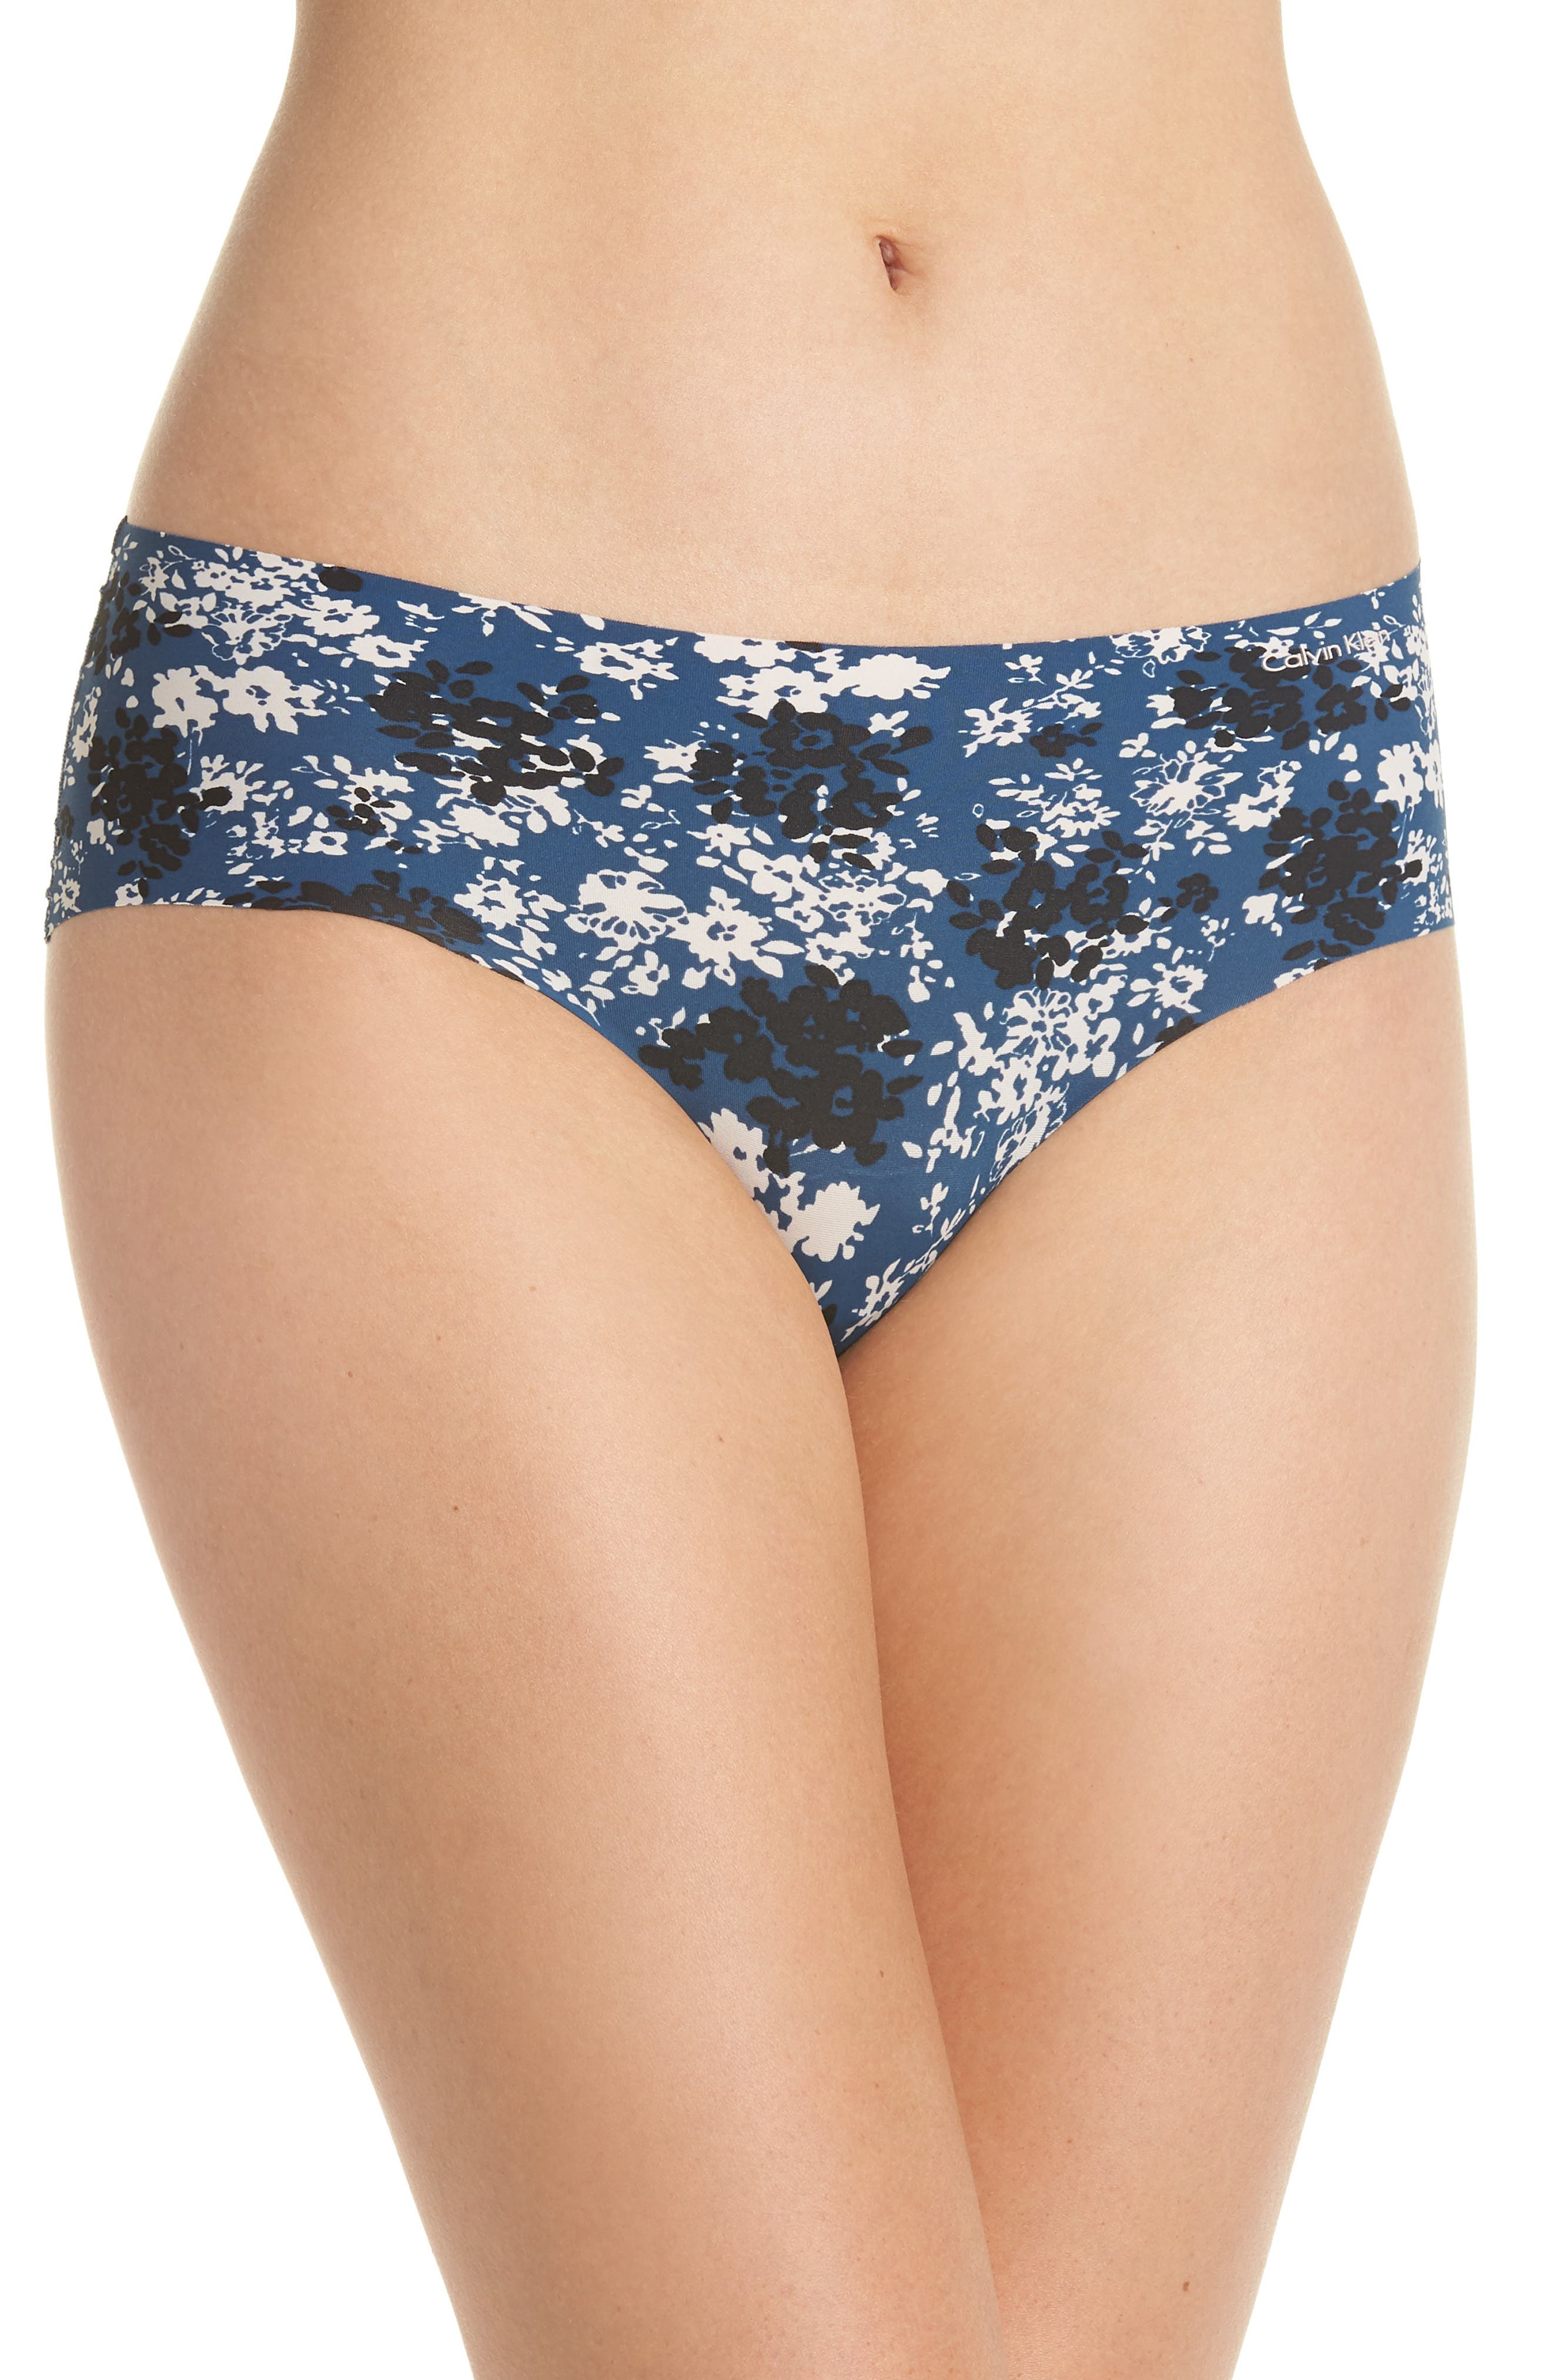 Invisibles Hipster Briefs,                             Main thumbnail 1, color,                             Simple Floral/ Lyria Blue